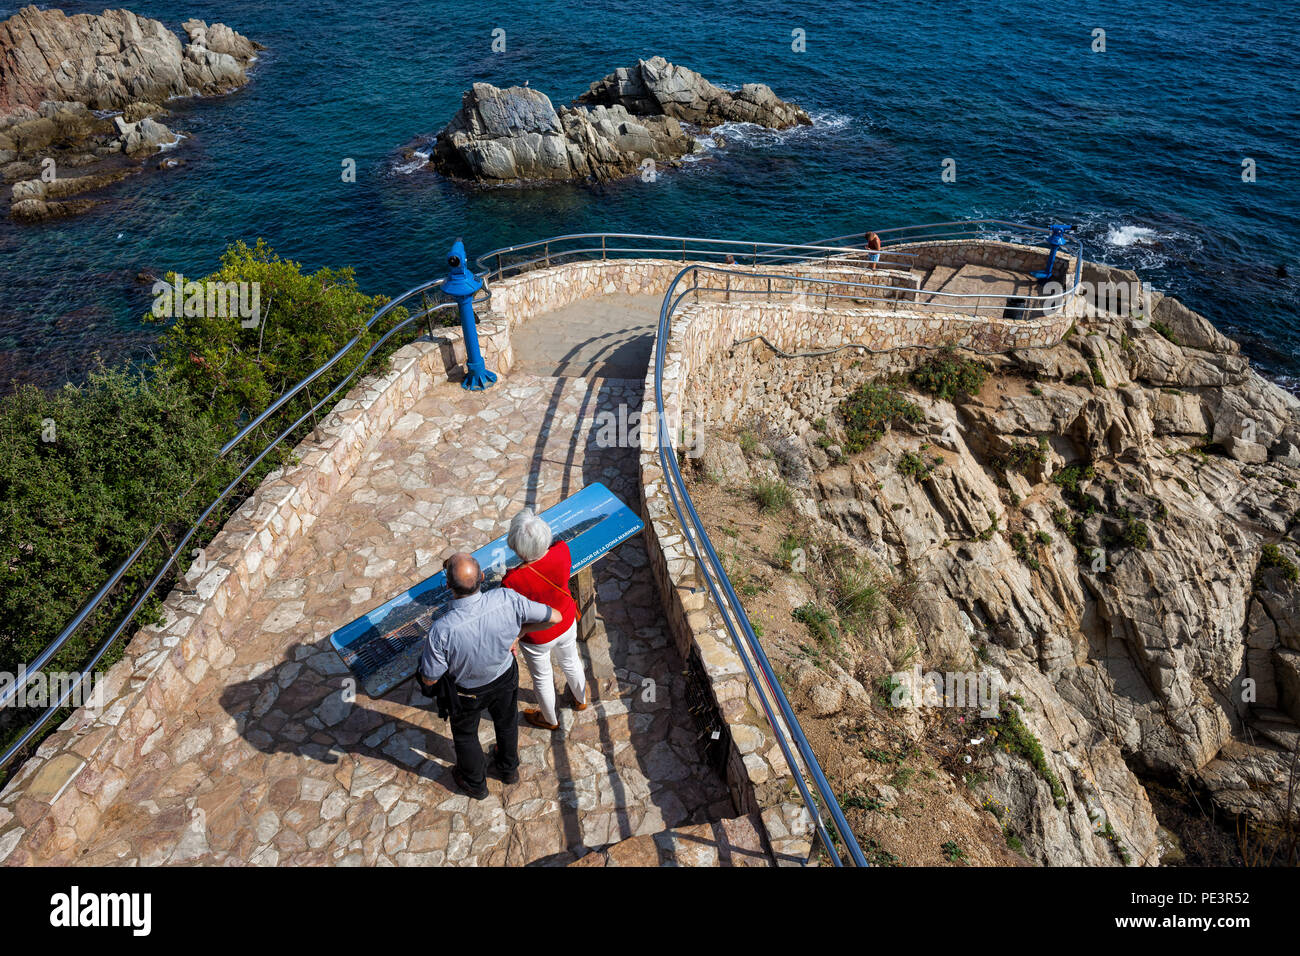 Lloret De Mar Spain Map.Cliff Stone Path With Stairs To The Sea In Lloret De Mar Town On